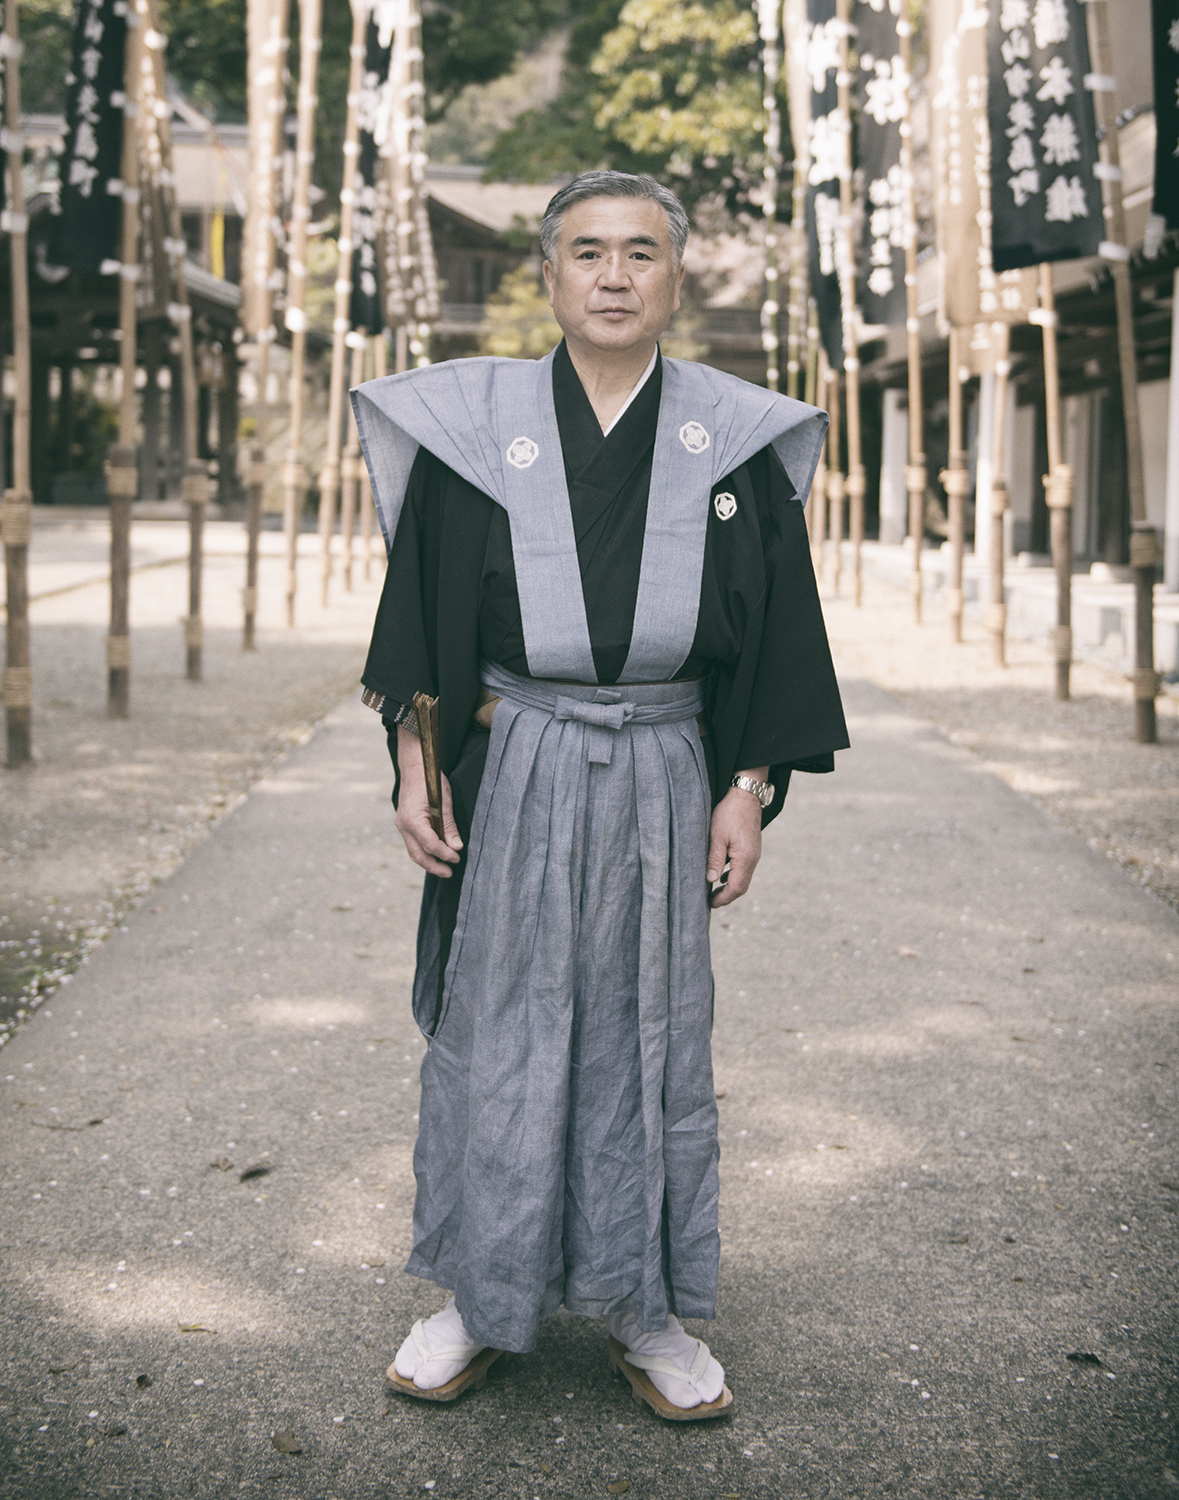 Mr. Fukuma is one of the Ujiko (氏子) people and also an owner of Fukuma-kan, a traditional Japanese style ryokan inn which has been in business since 1717.